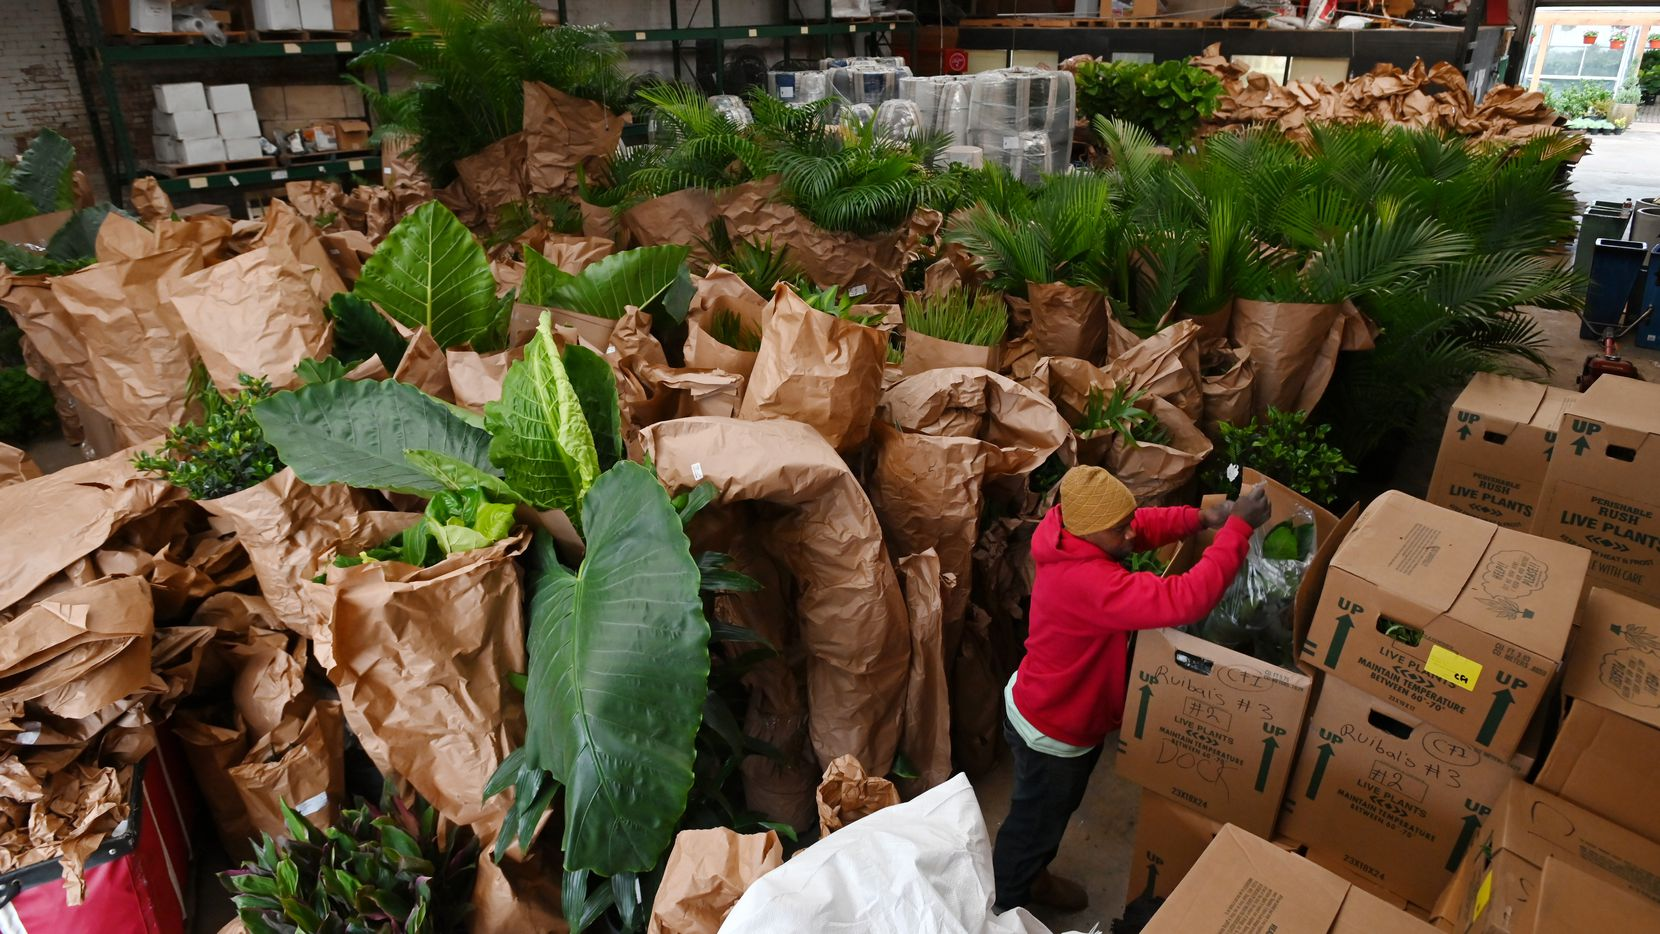 Worker Rodrick Jones, bottom right, unboxes tropical plants as Ruibal's Plants of Texas received a large shipment of inventory from Florida on Monday afternoon.